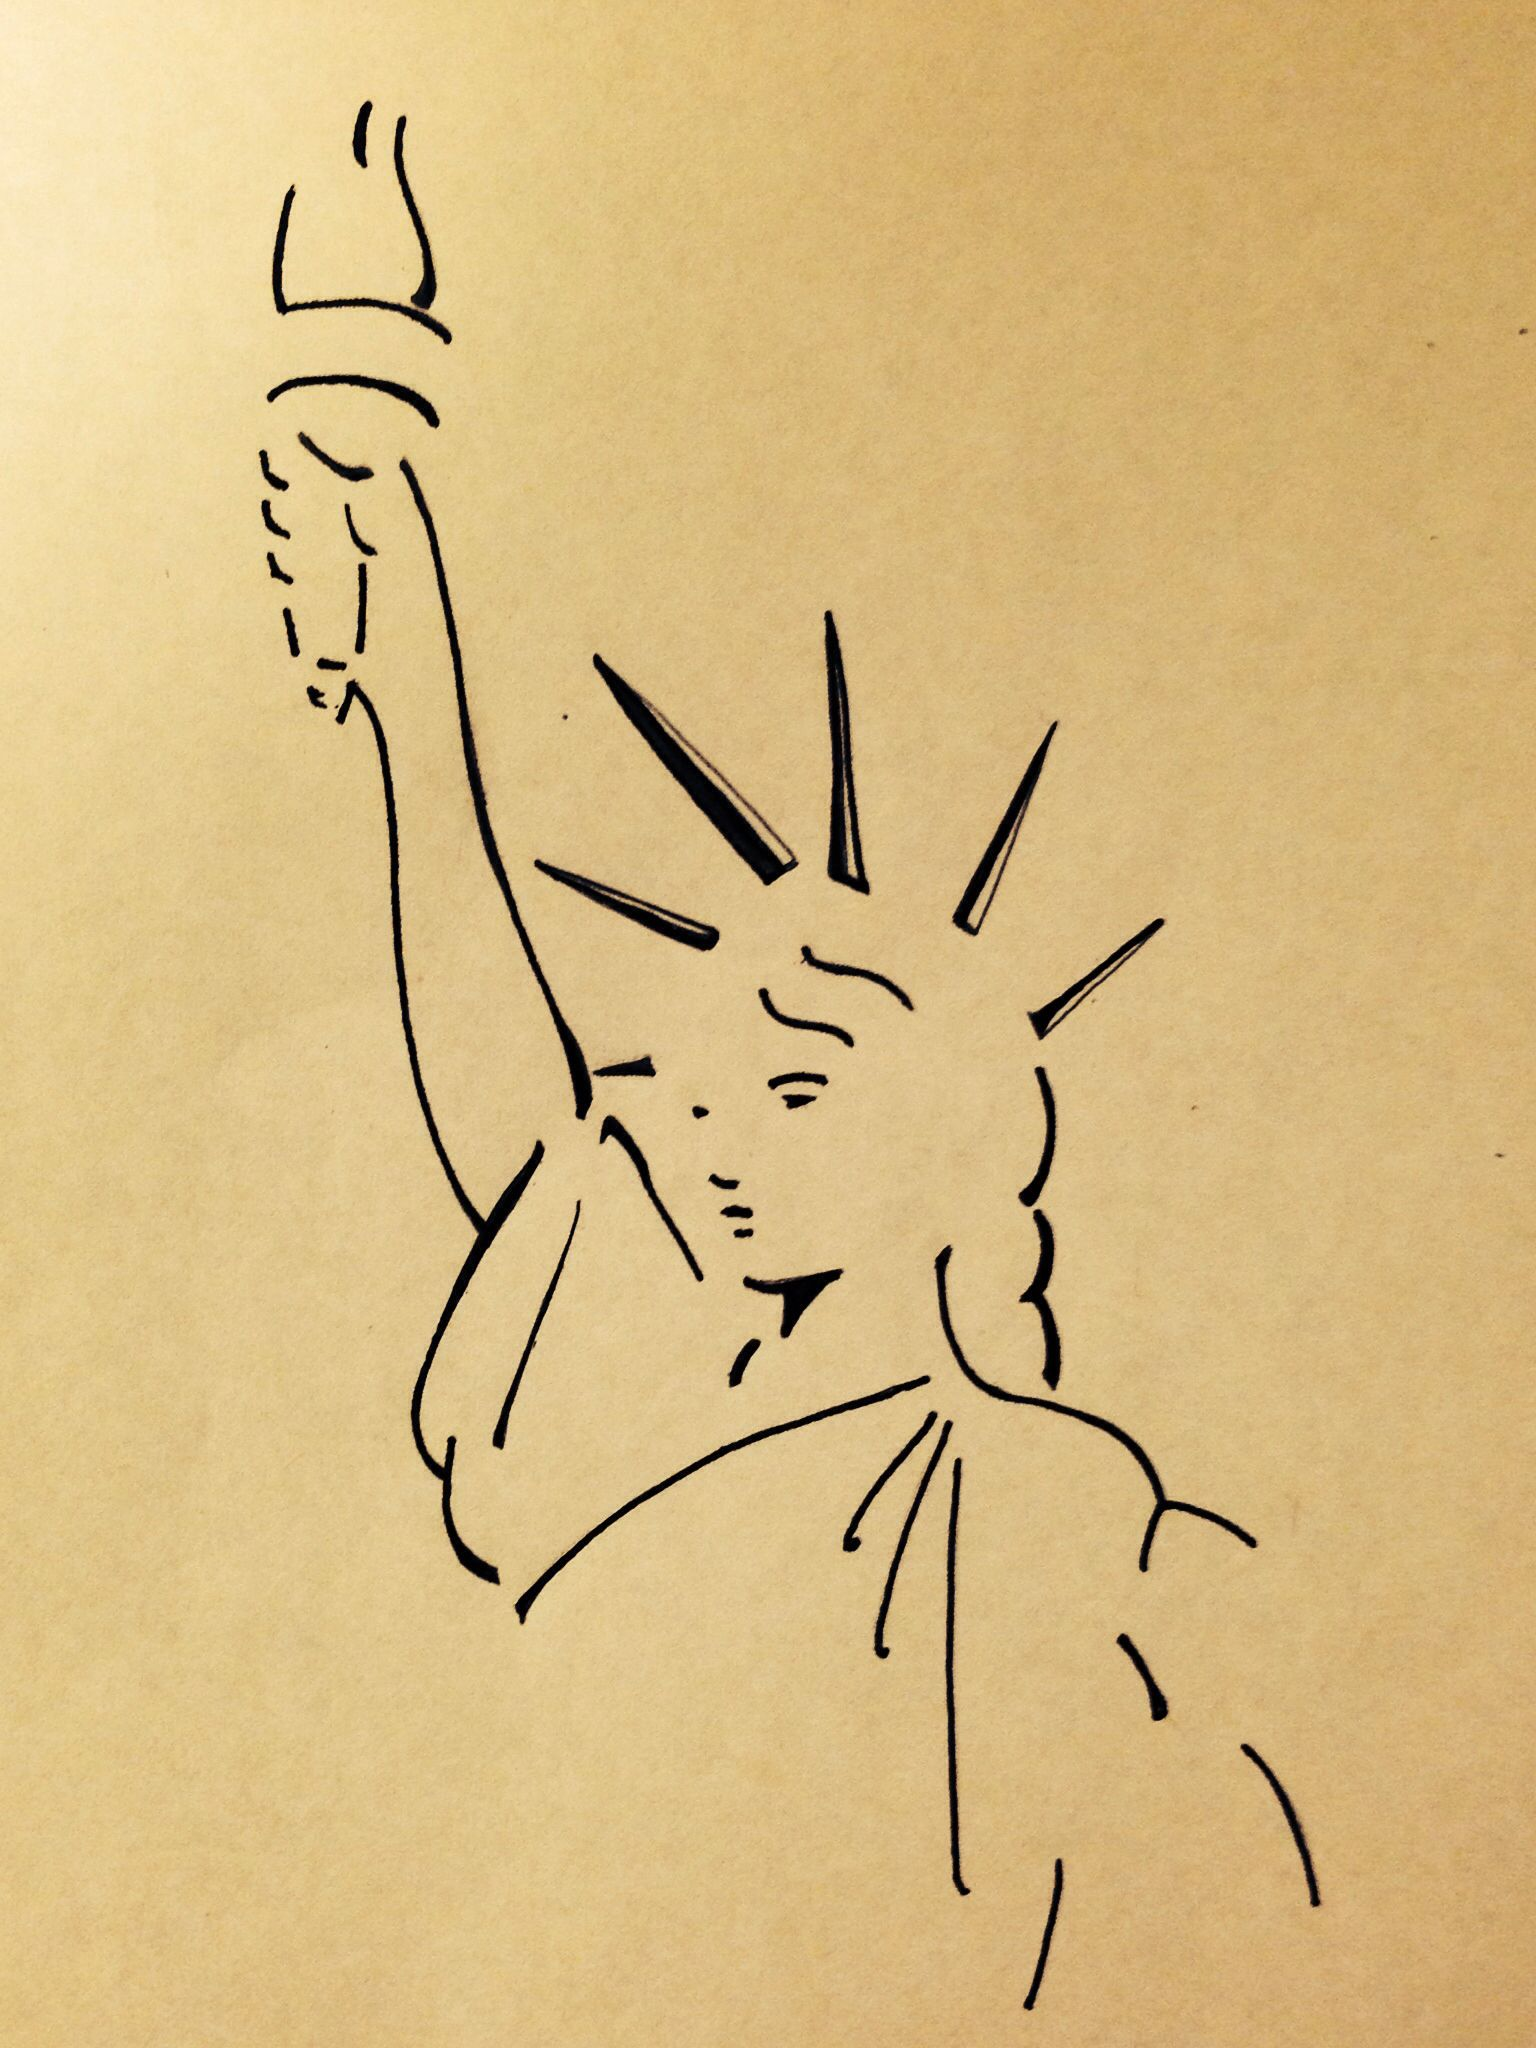 Artwork Art Drawings Statue Of Liberty Drawing How To Draw Wire Diagrams Http Picsboxbiz Key Howtodraw Simple Lines By Amie Kennedy